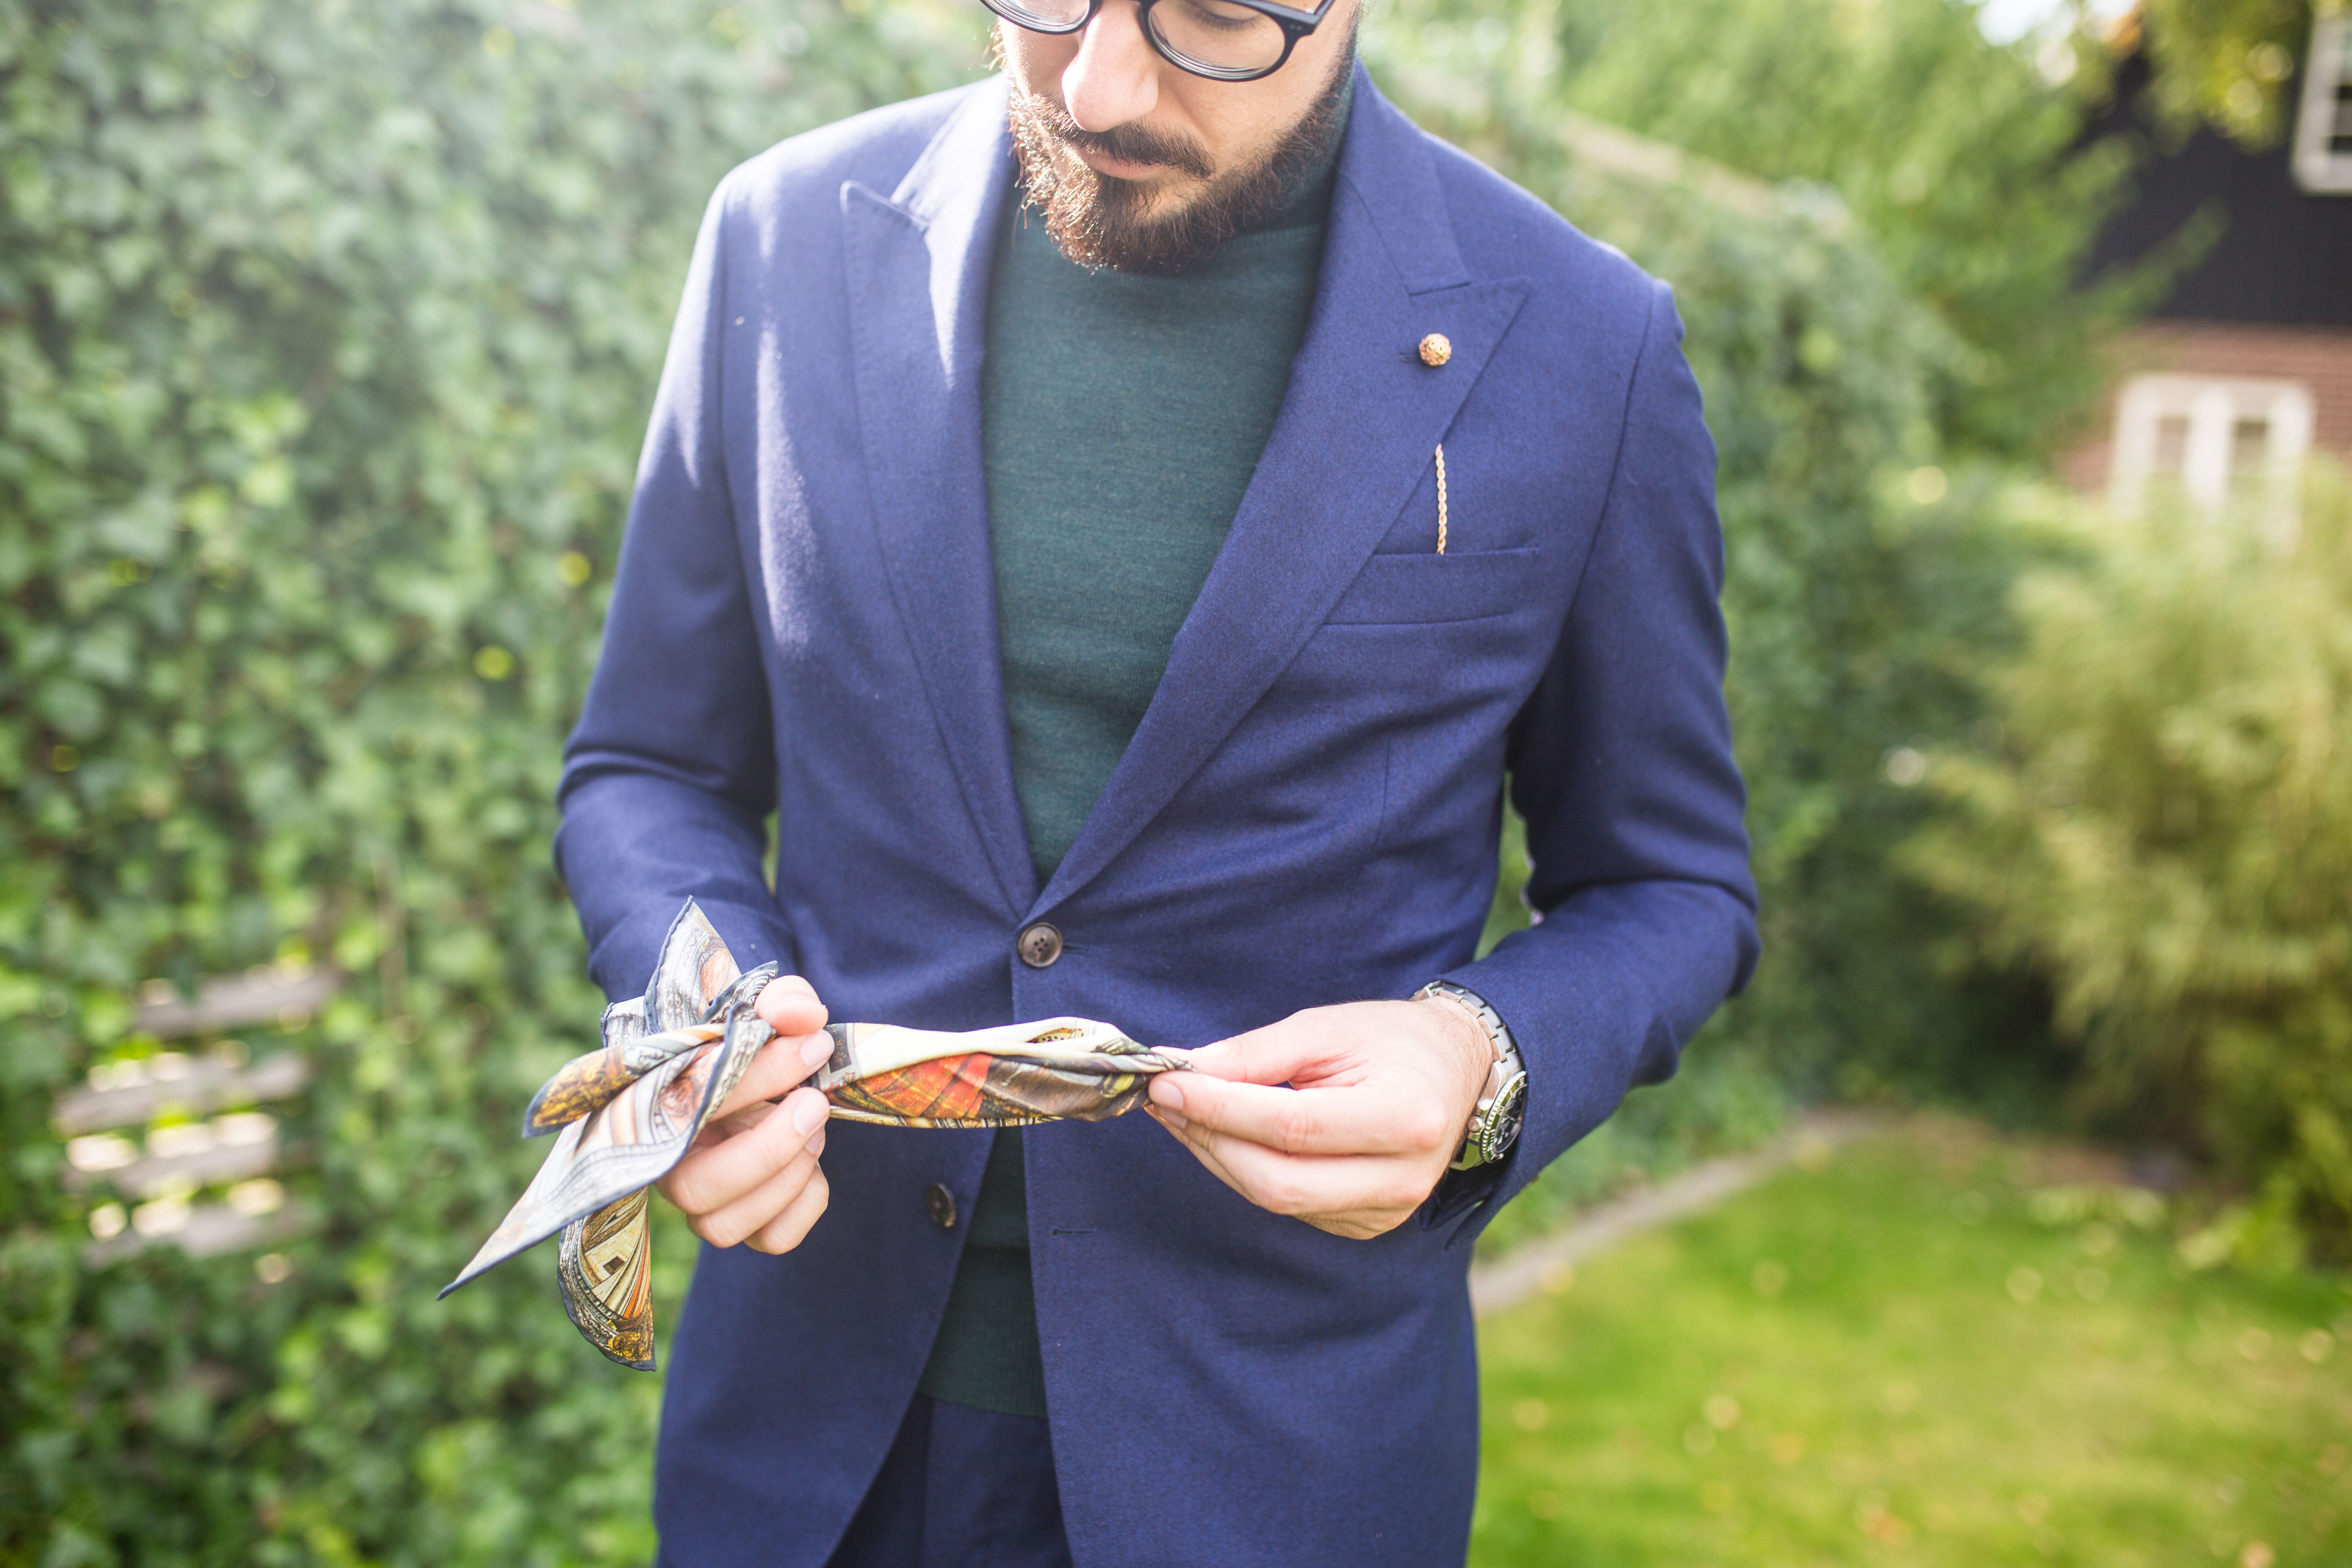 Review: The Bespoke Shop – Handmade Accessories